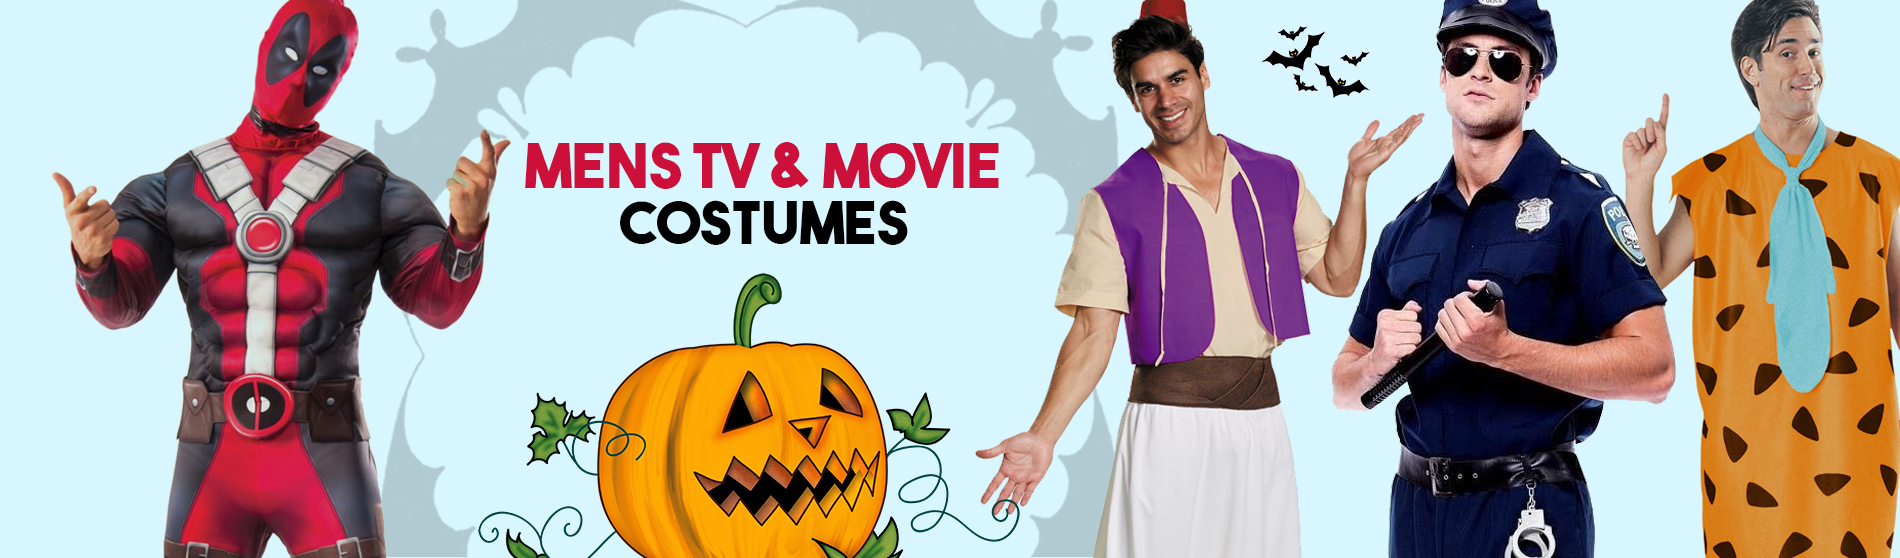 Mens-TV-and-Movie-Costumes